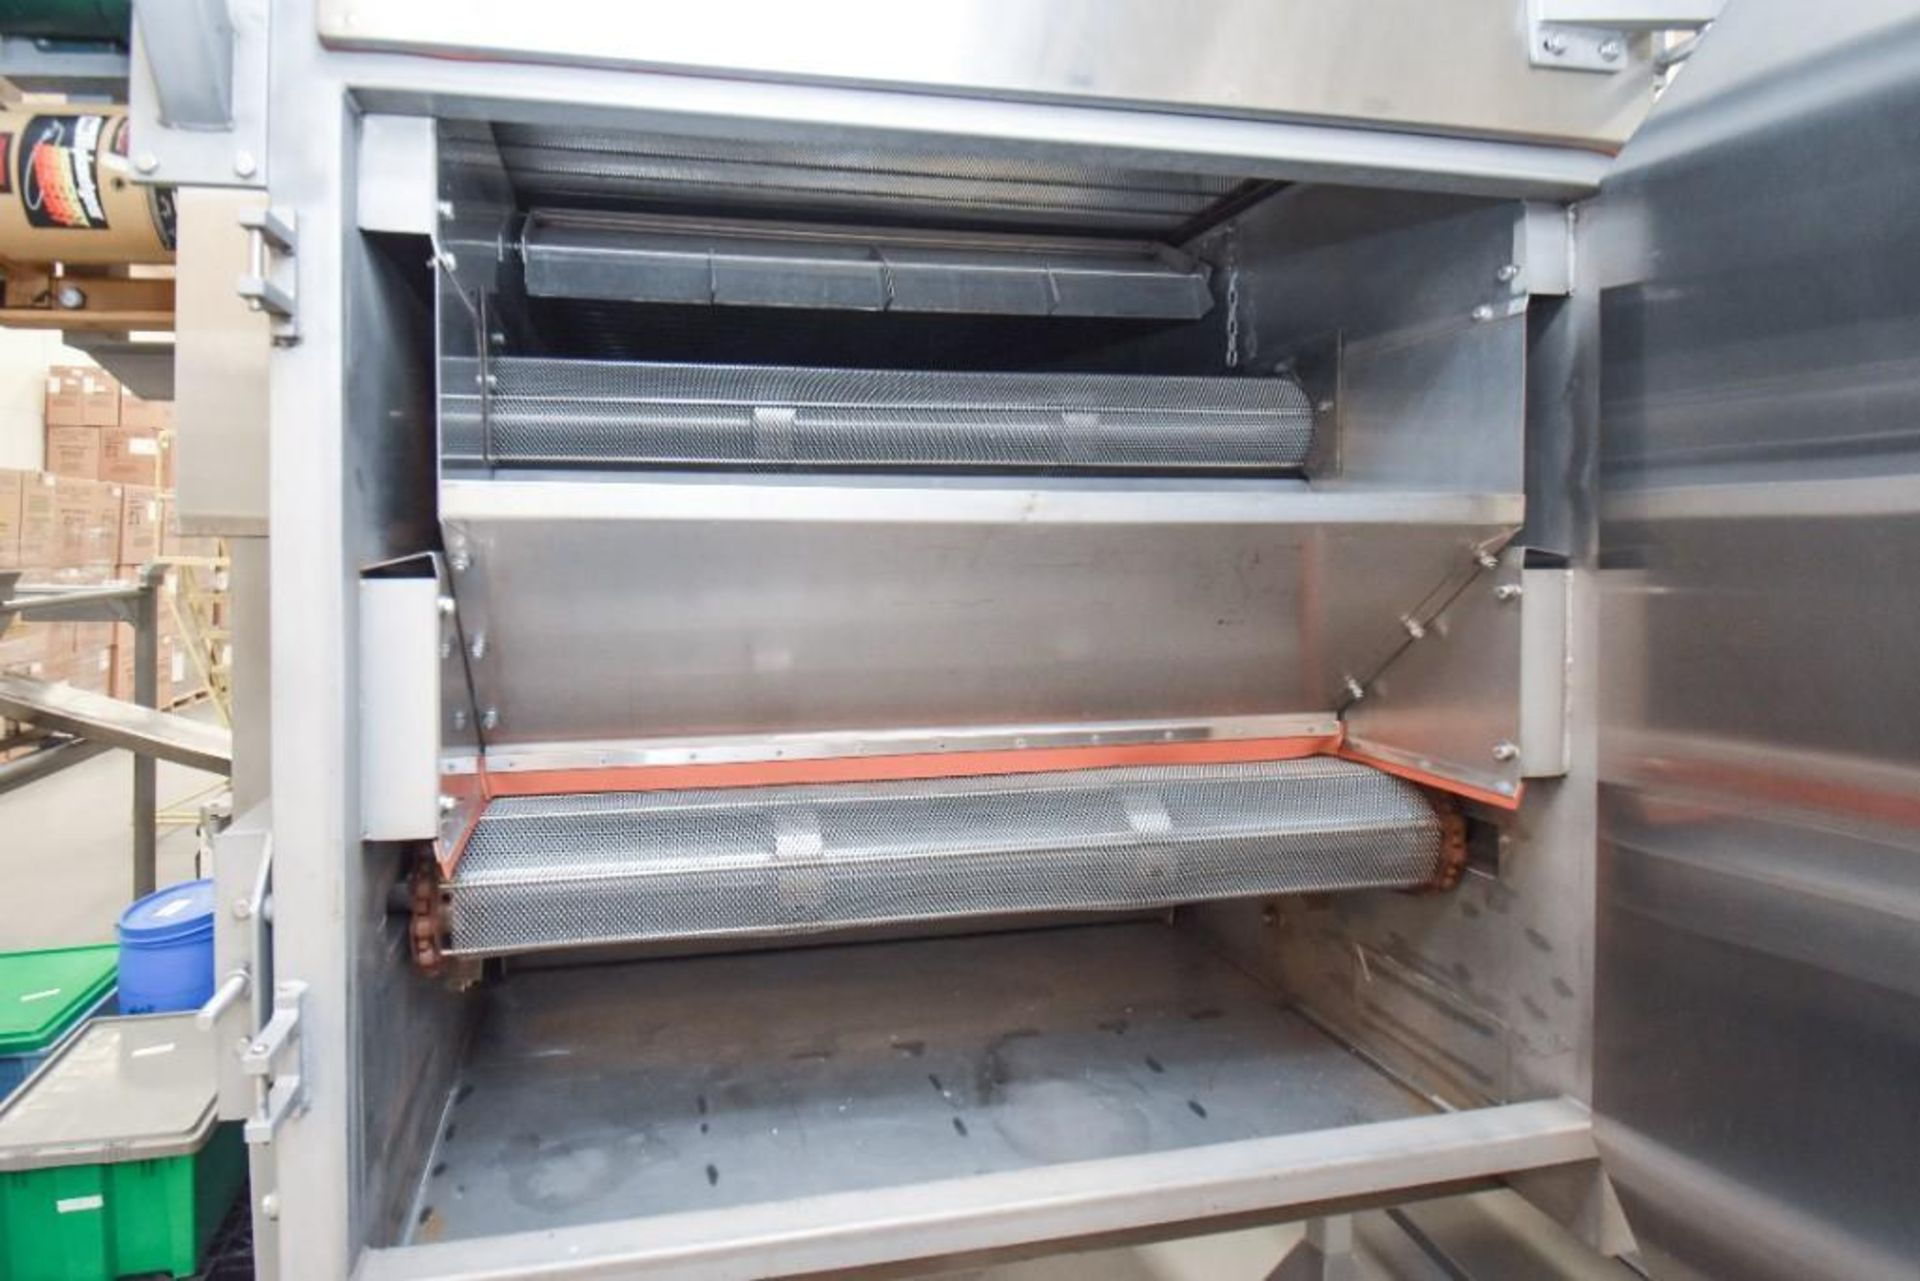 Wenger Dryer Oven Series IV 4800 - Image 5 of 7